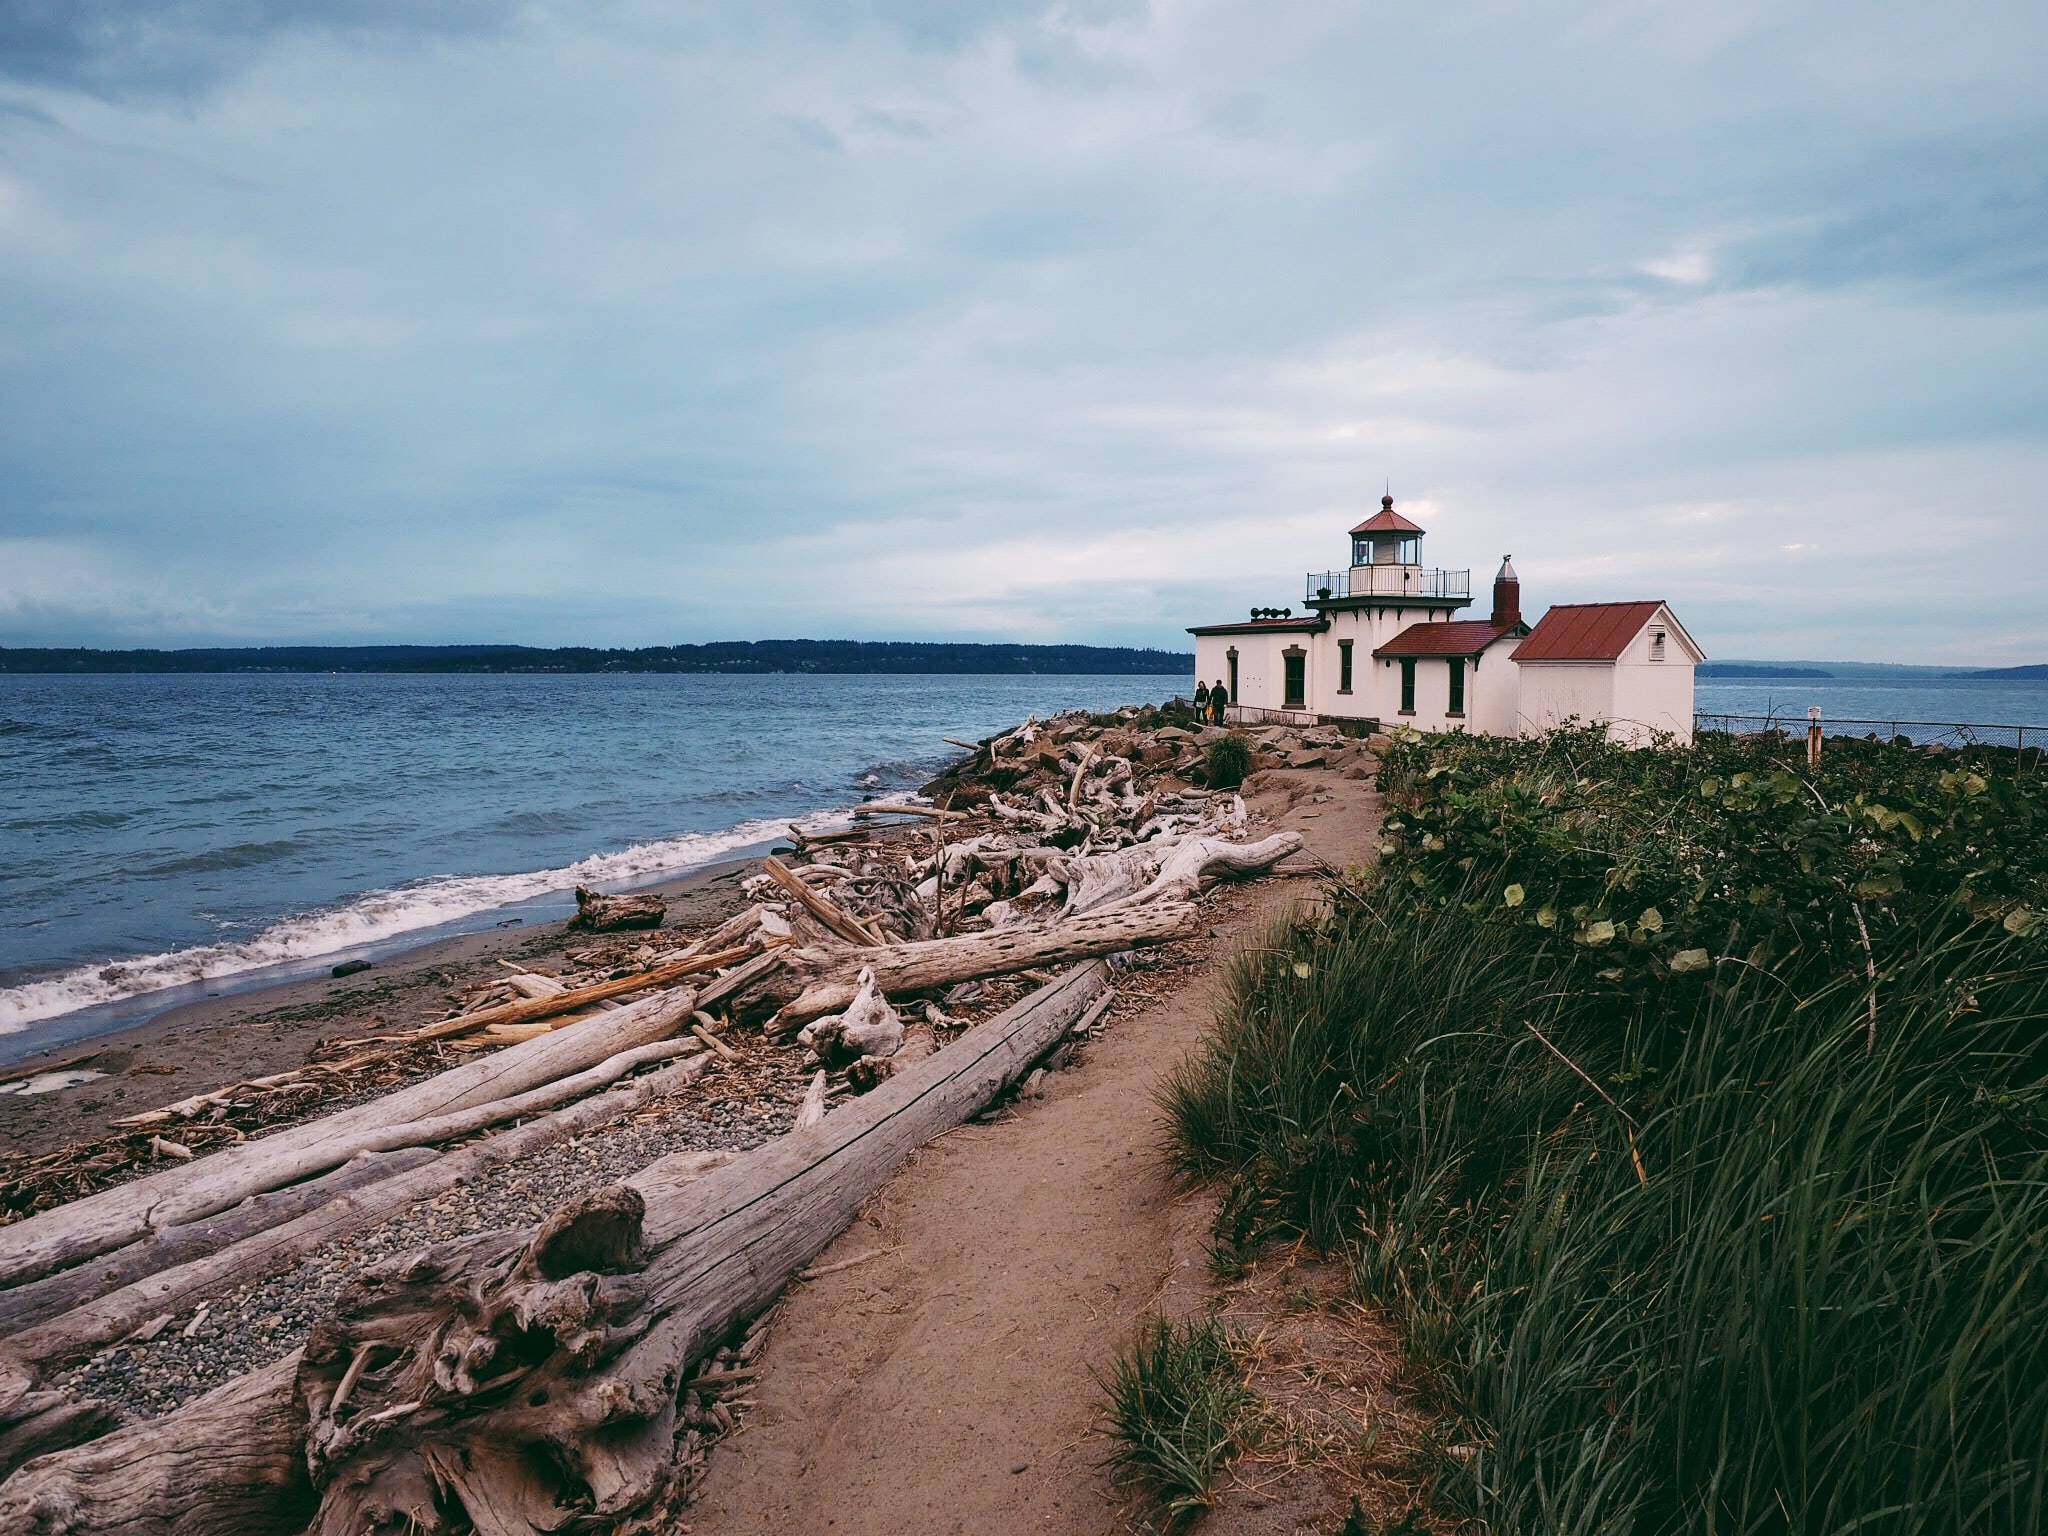 Discovery Park Seattle, West Point Lighthouse Photo by Paul Matheson on Unsplash